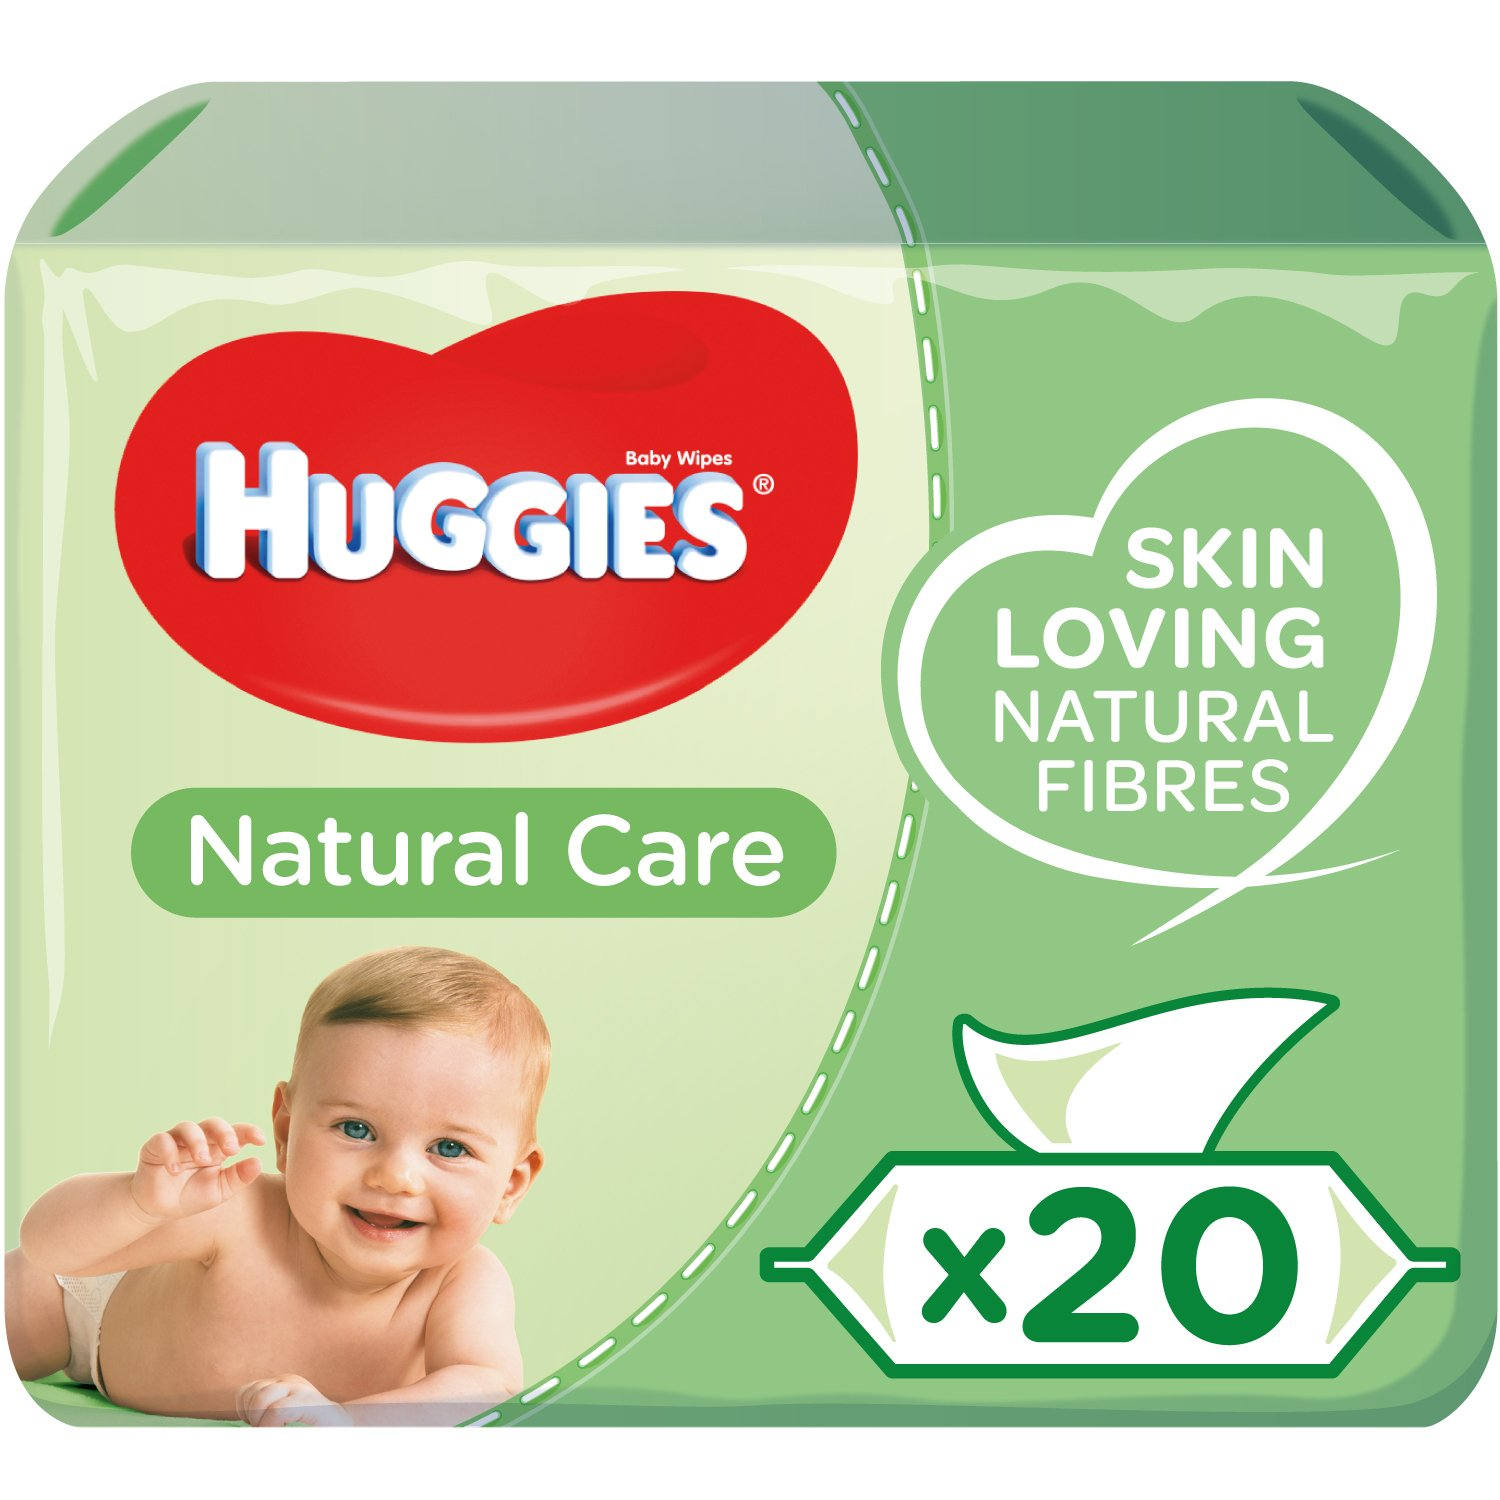 Huggies Natural Care Baby Wipes - 20 Packs (1120 Wipes Total) Kimberly-Clark 2430100-1